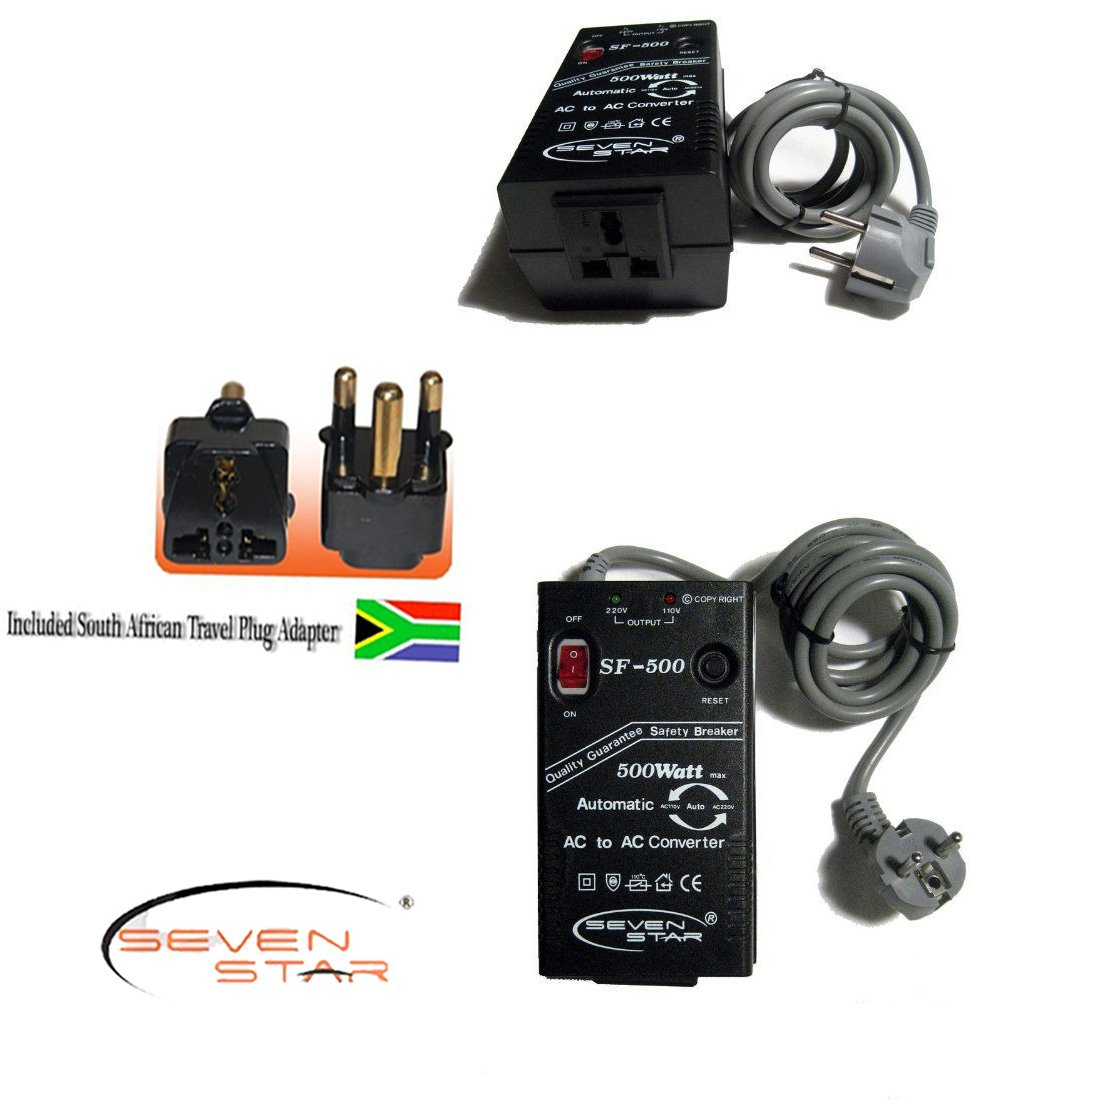 Seven Star SF500 500W 110v/220v 220v/110v Step Up/Down Automatic Transformer Adapter + South Africa Travel Adapter Plug